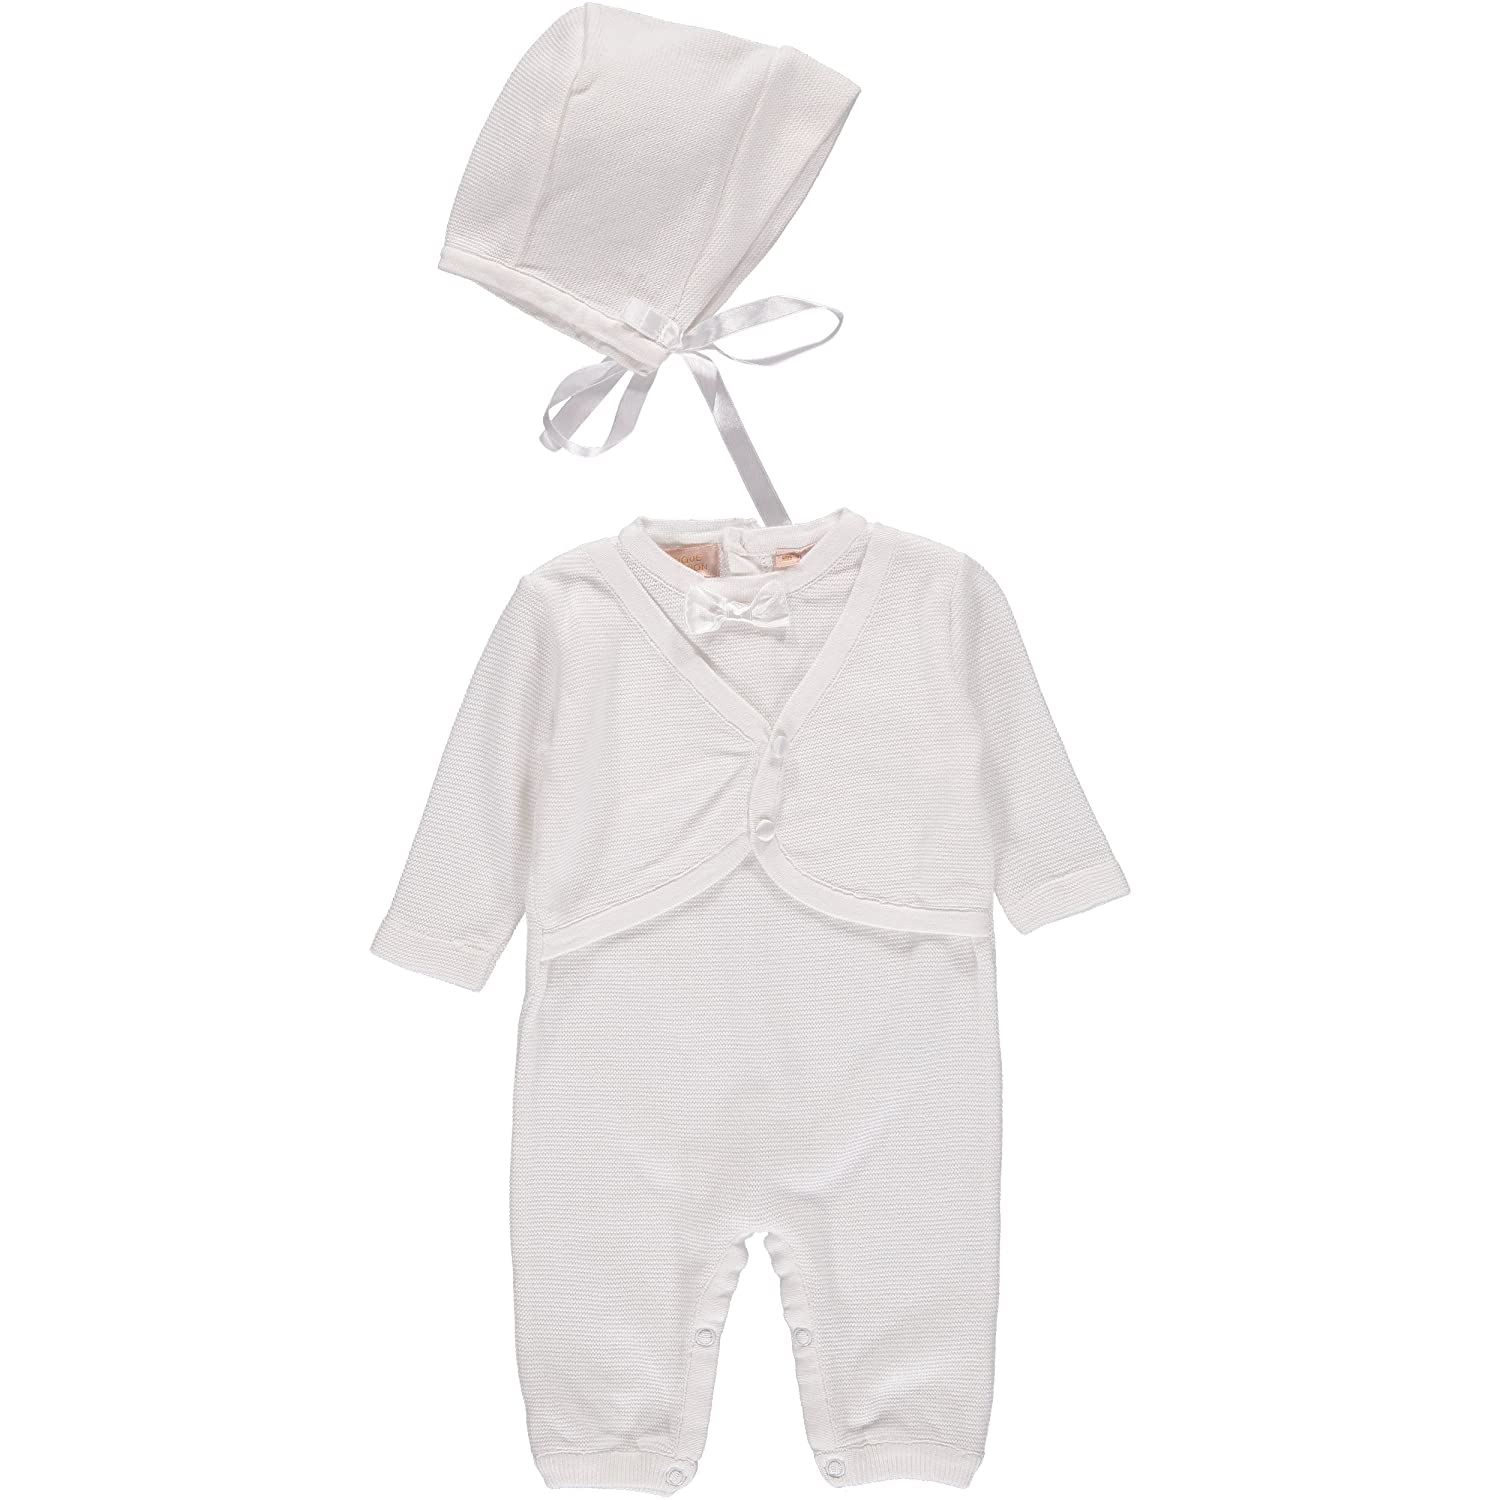 Boutique Collection Baby Boys' Christening Outfit with Attached Vest and Matching Bonnet